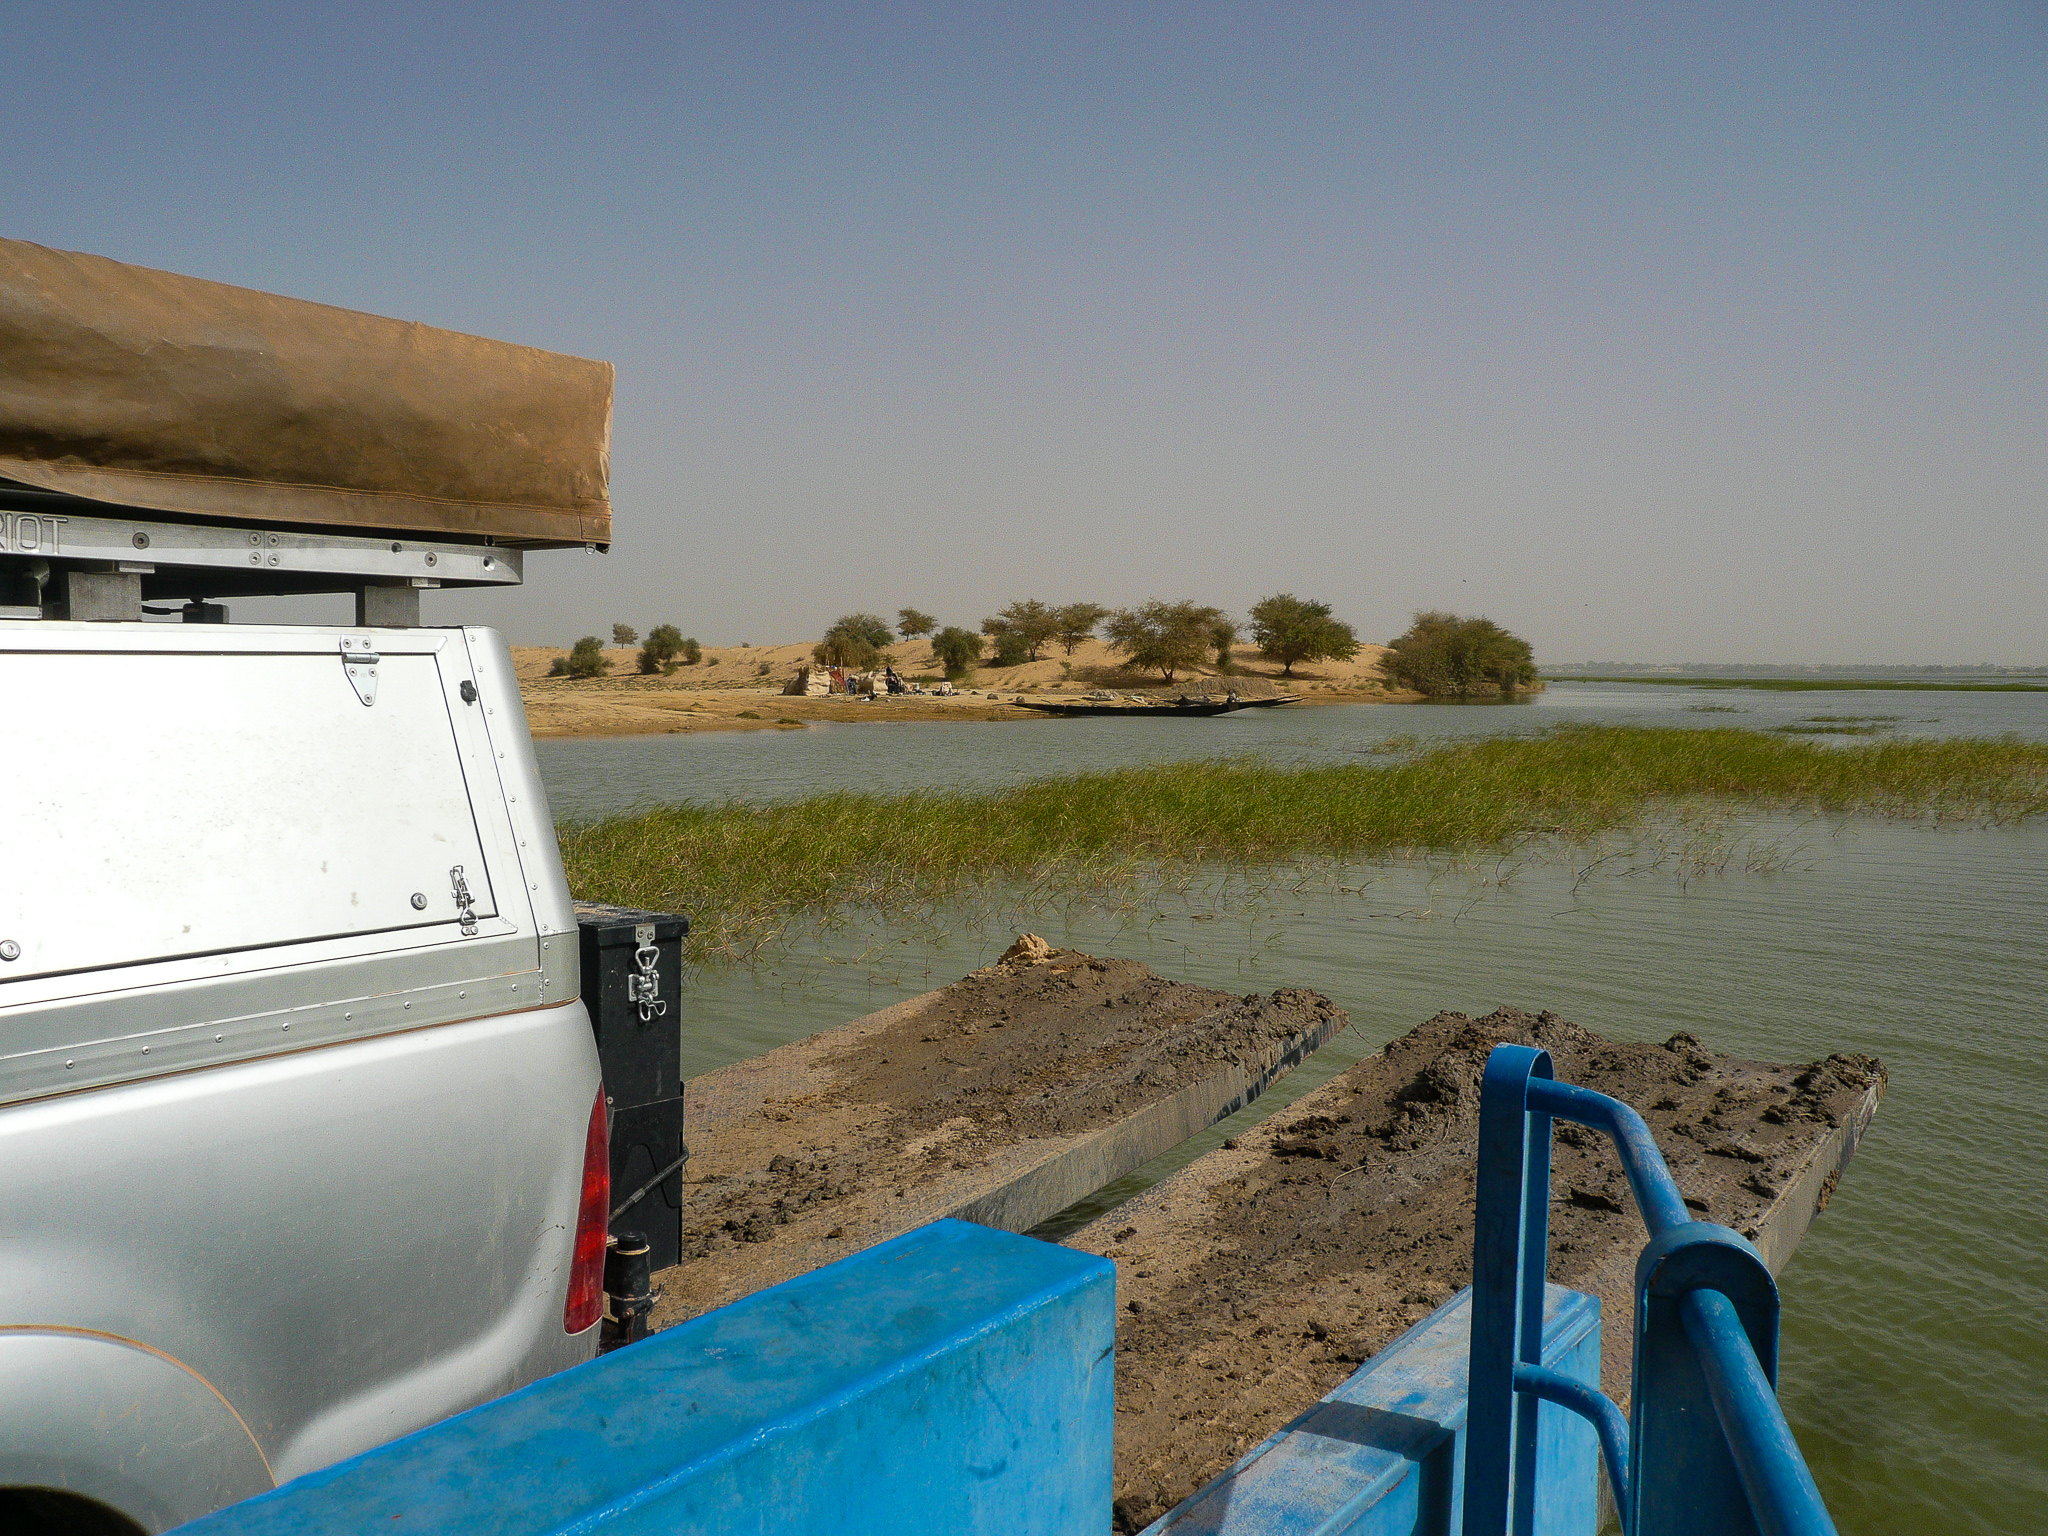 THE  BAK  (FERRY) CONVEYED US ACROSS THE NIGER TO GOURMA-RHAROUS.